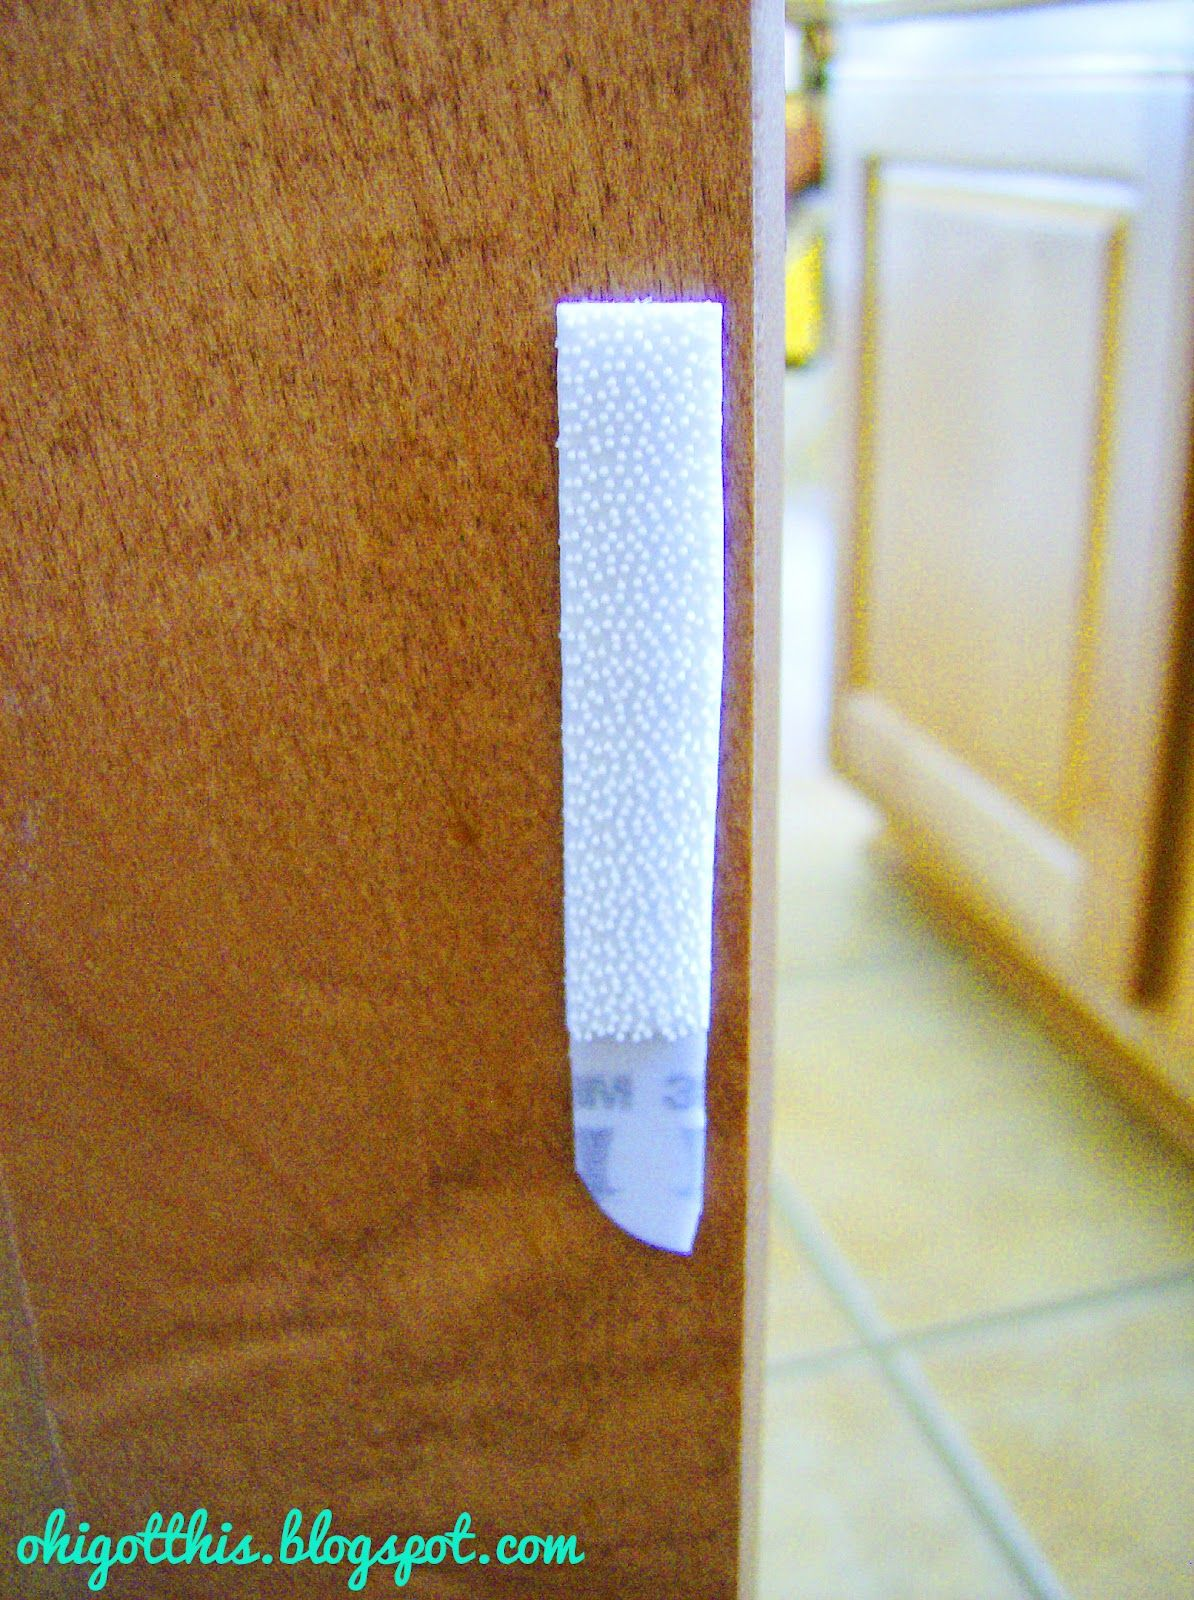 Velcro Cabinet Doors Less Annoying And More Baby Proofing